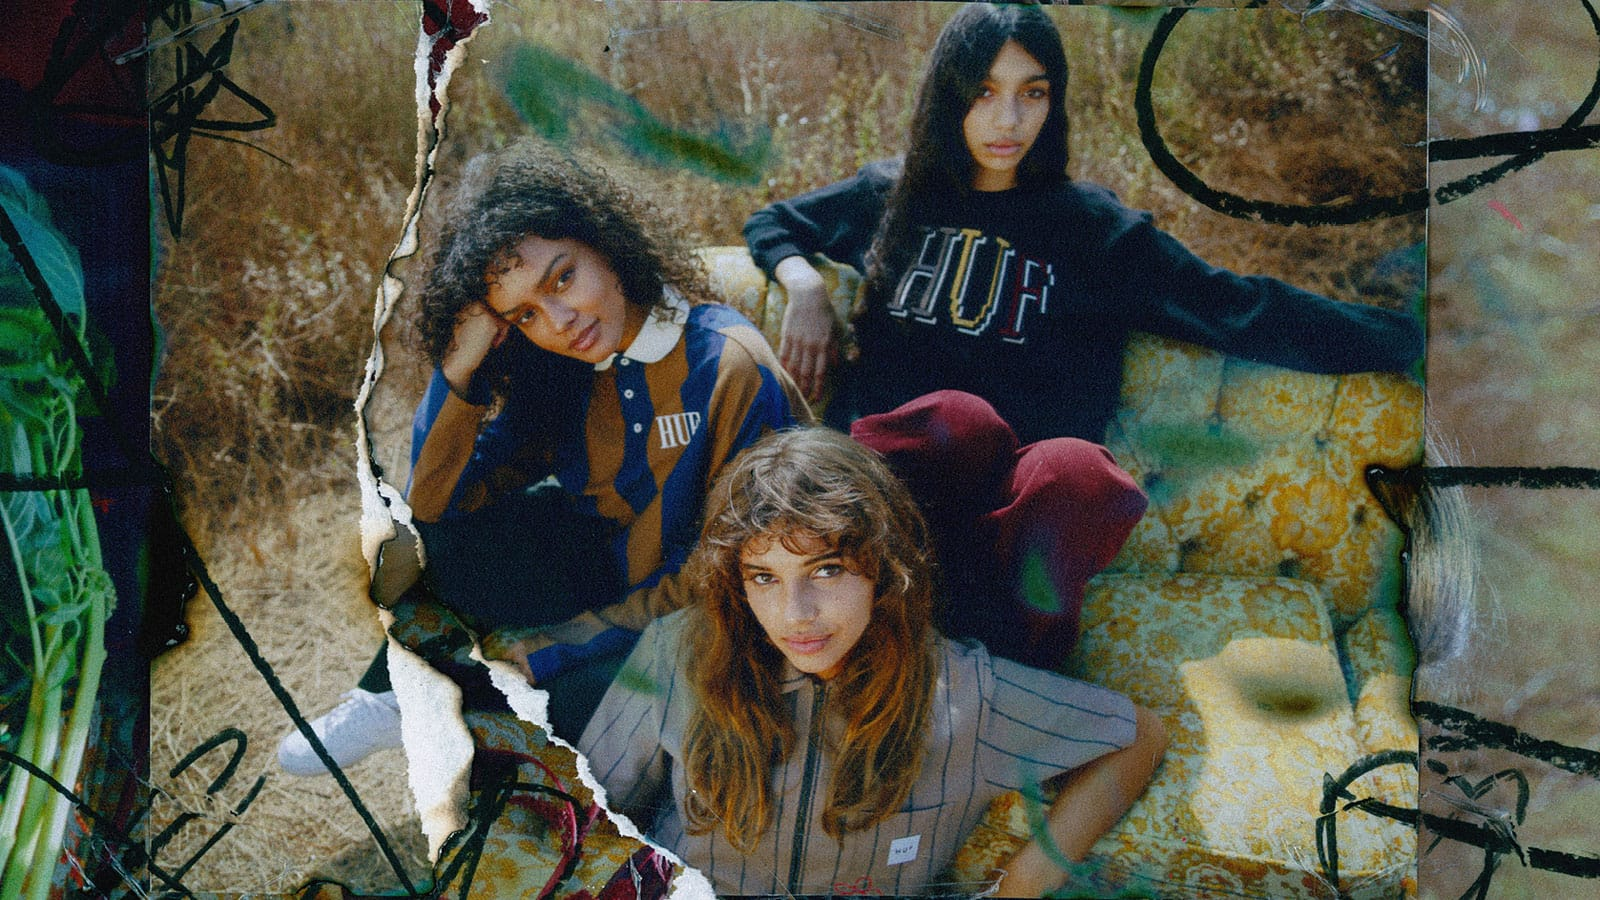 HUF Women's Fall 21 Collection